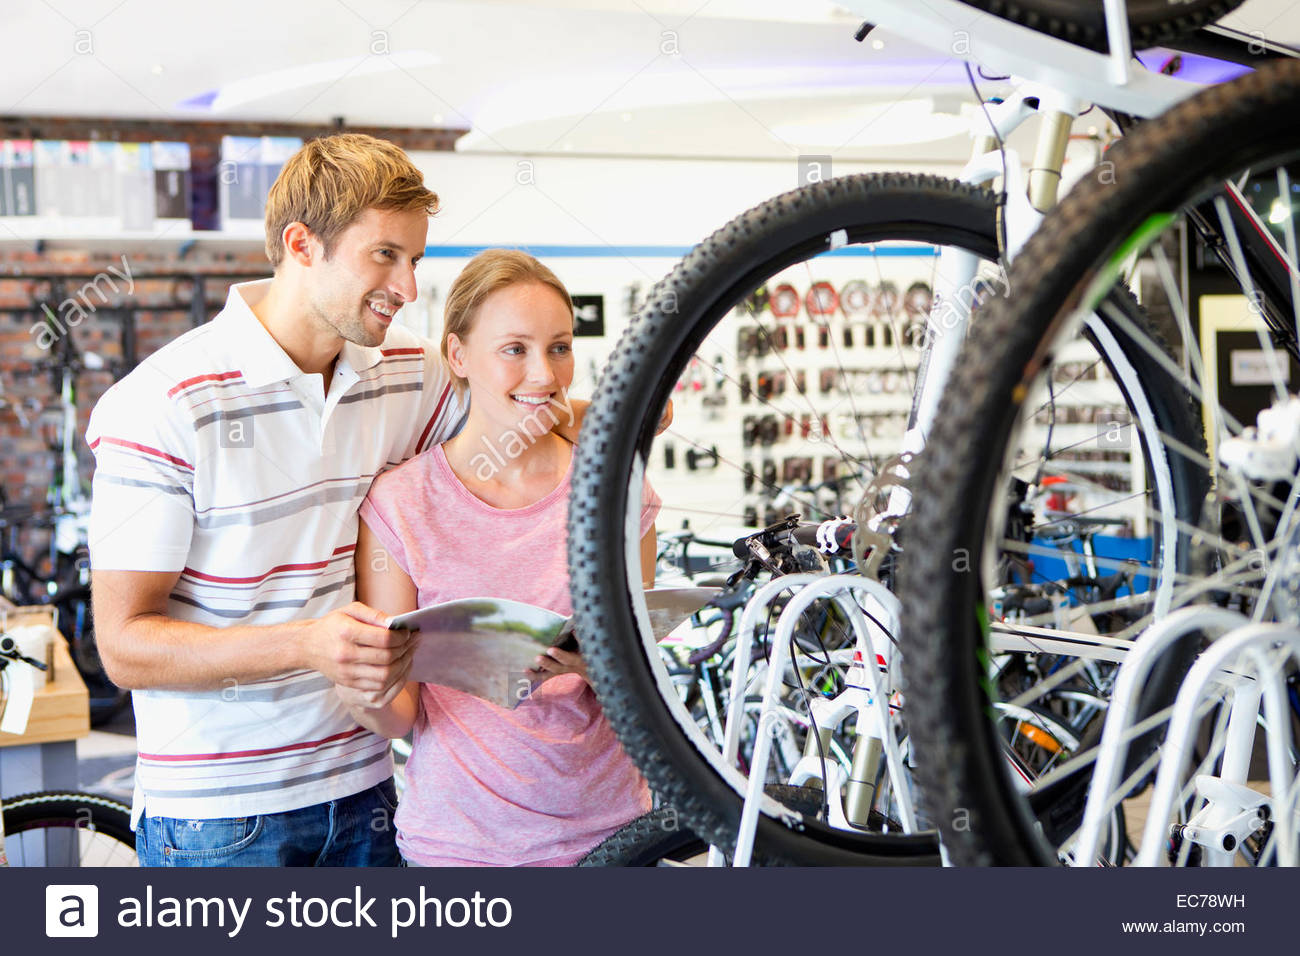 Le choix d'un couple en vélo shop Photo Stock